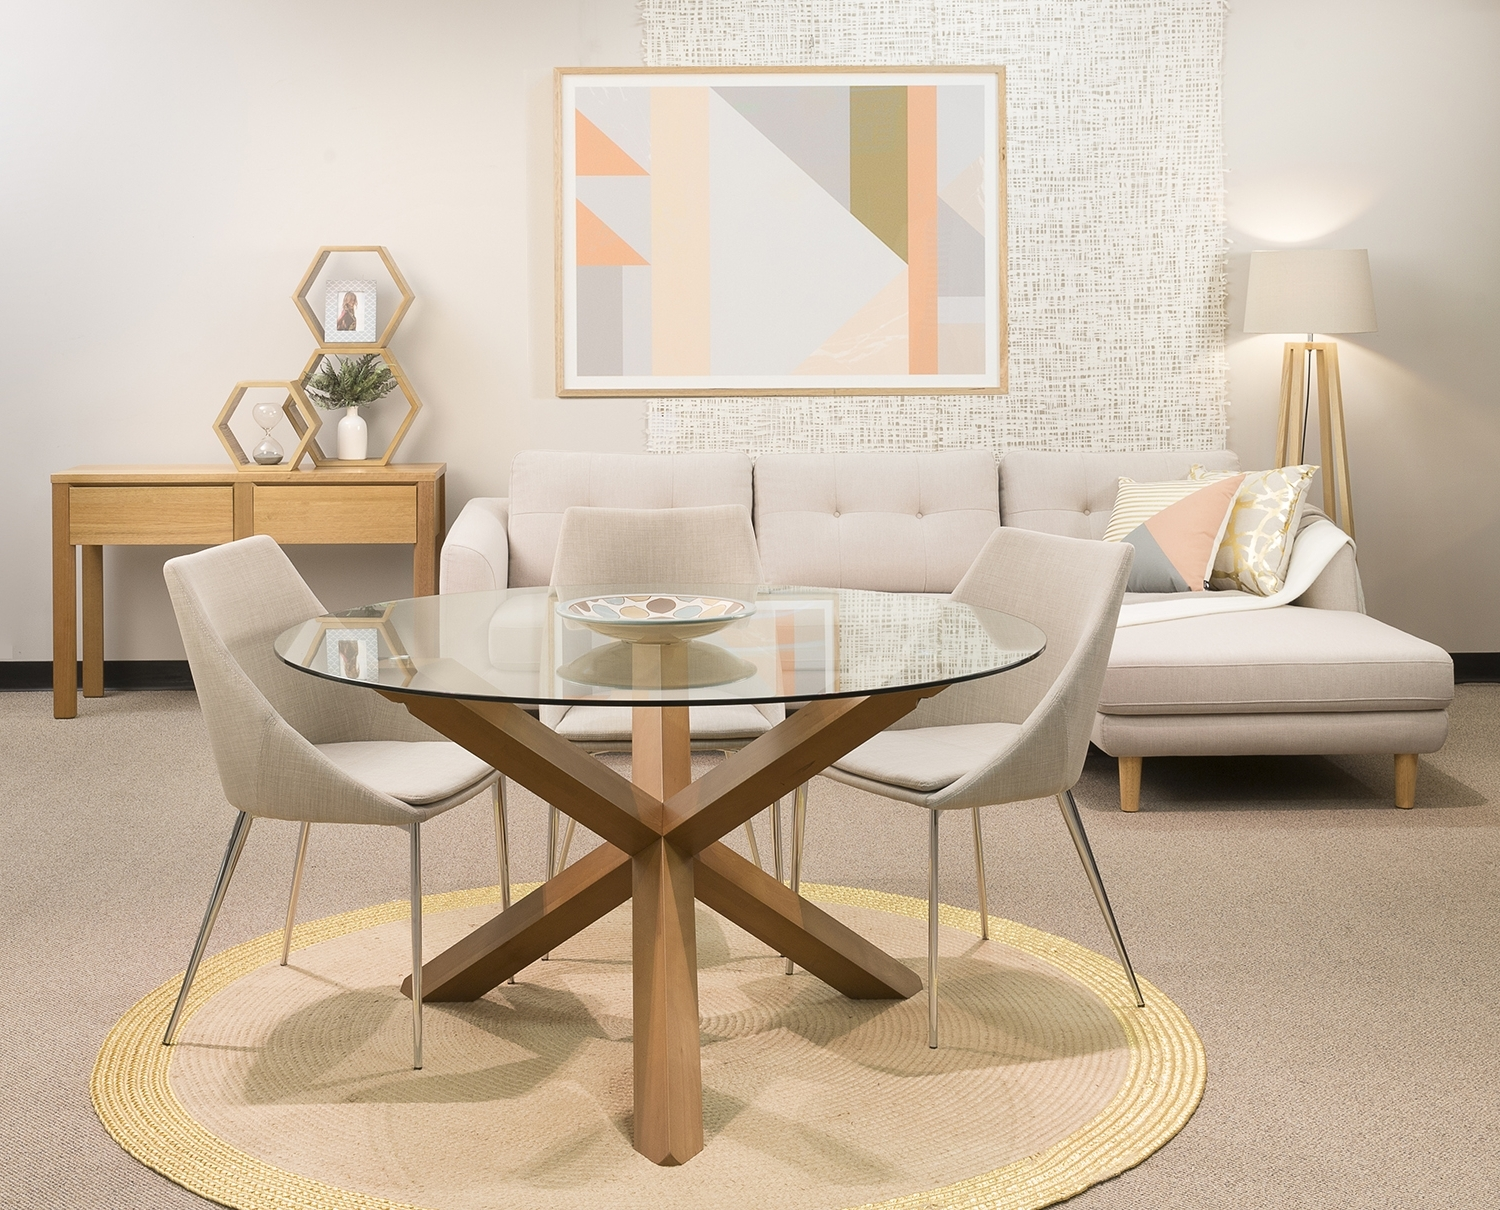 Dezign Furniture & Homewares Stores – Sydney Within Oak And Glass Dining Tables Sets (View 8 of 25)